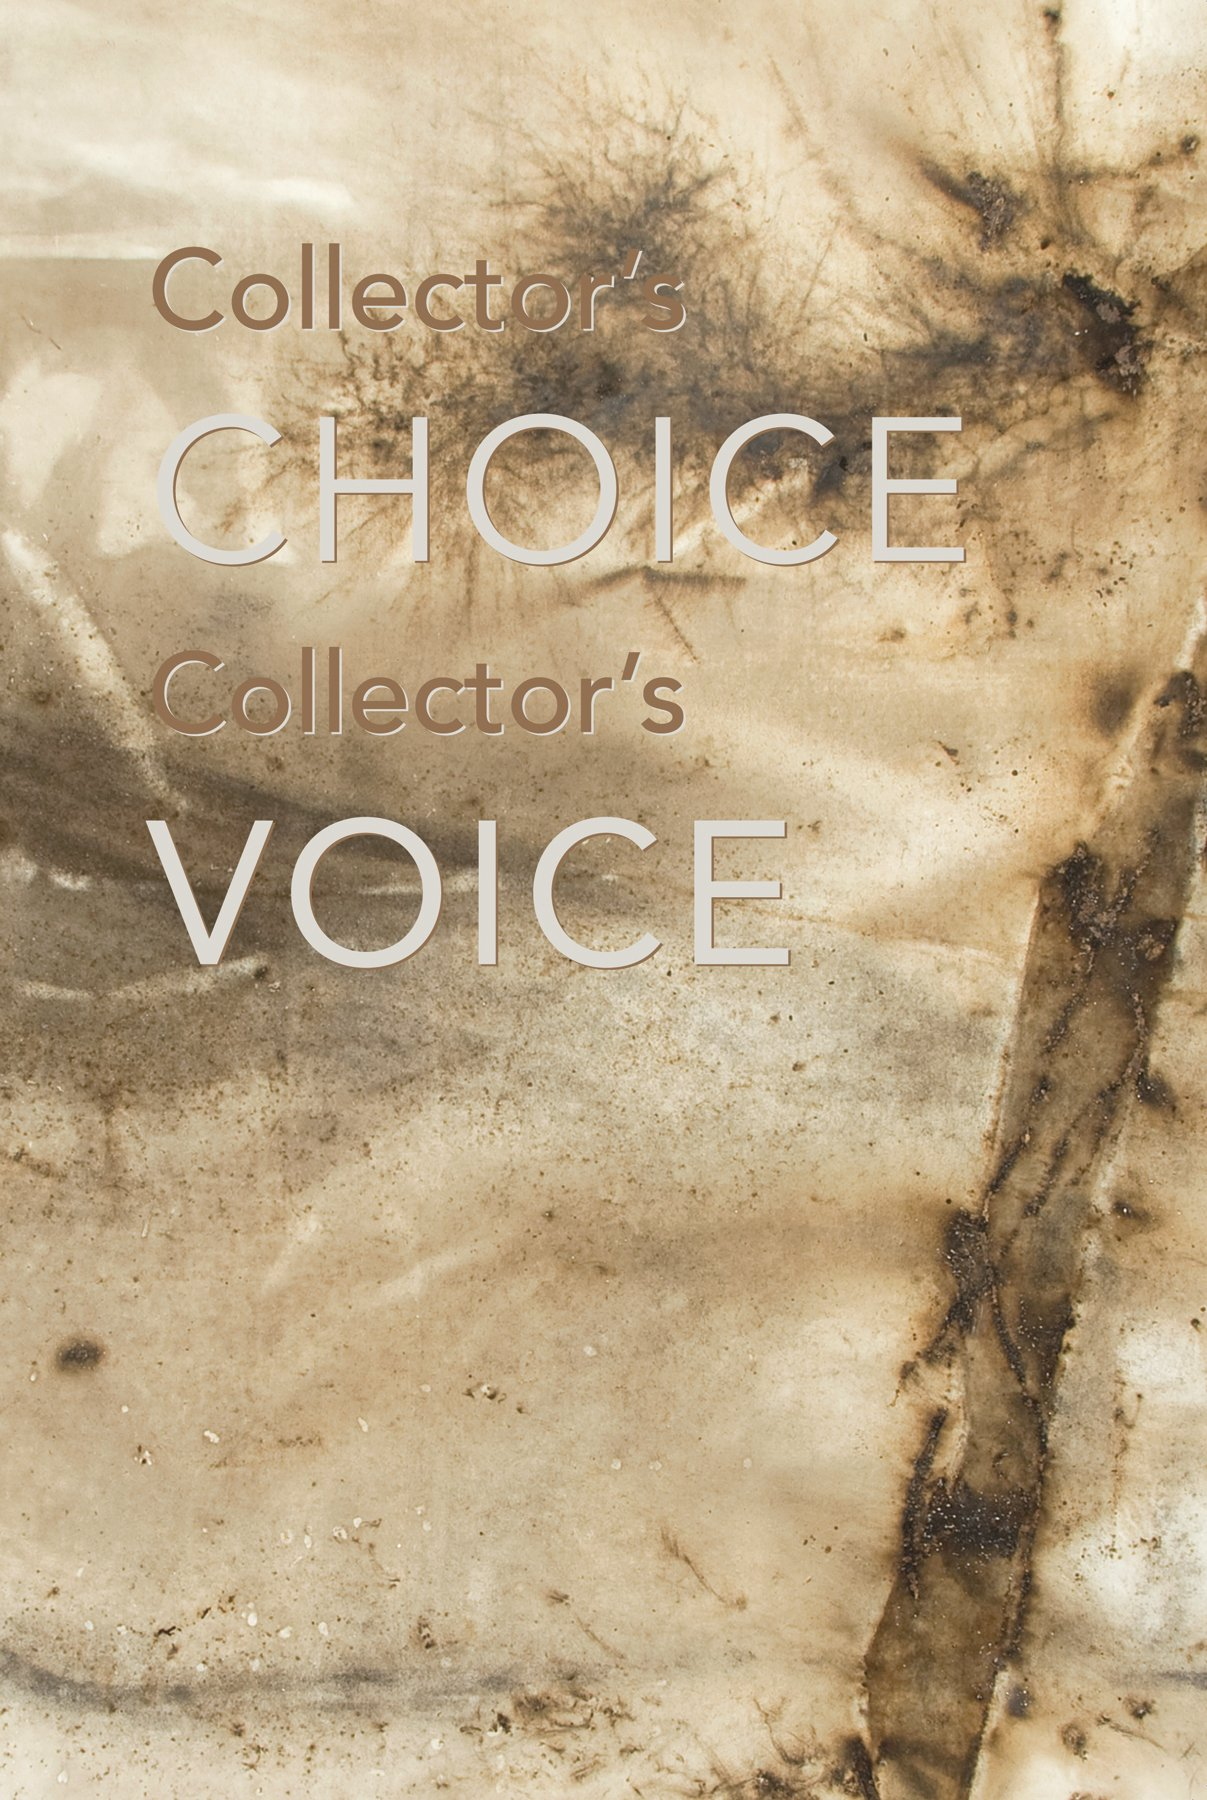 Collector's Choice, Collector's Voice PDF